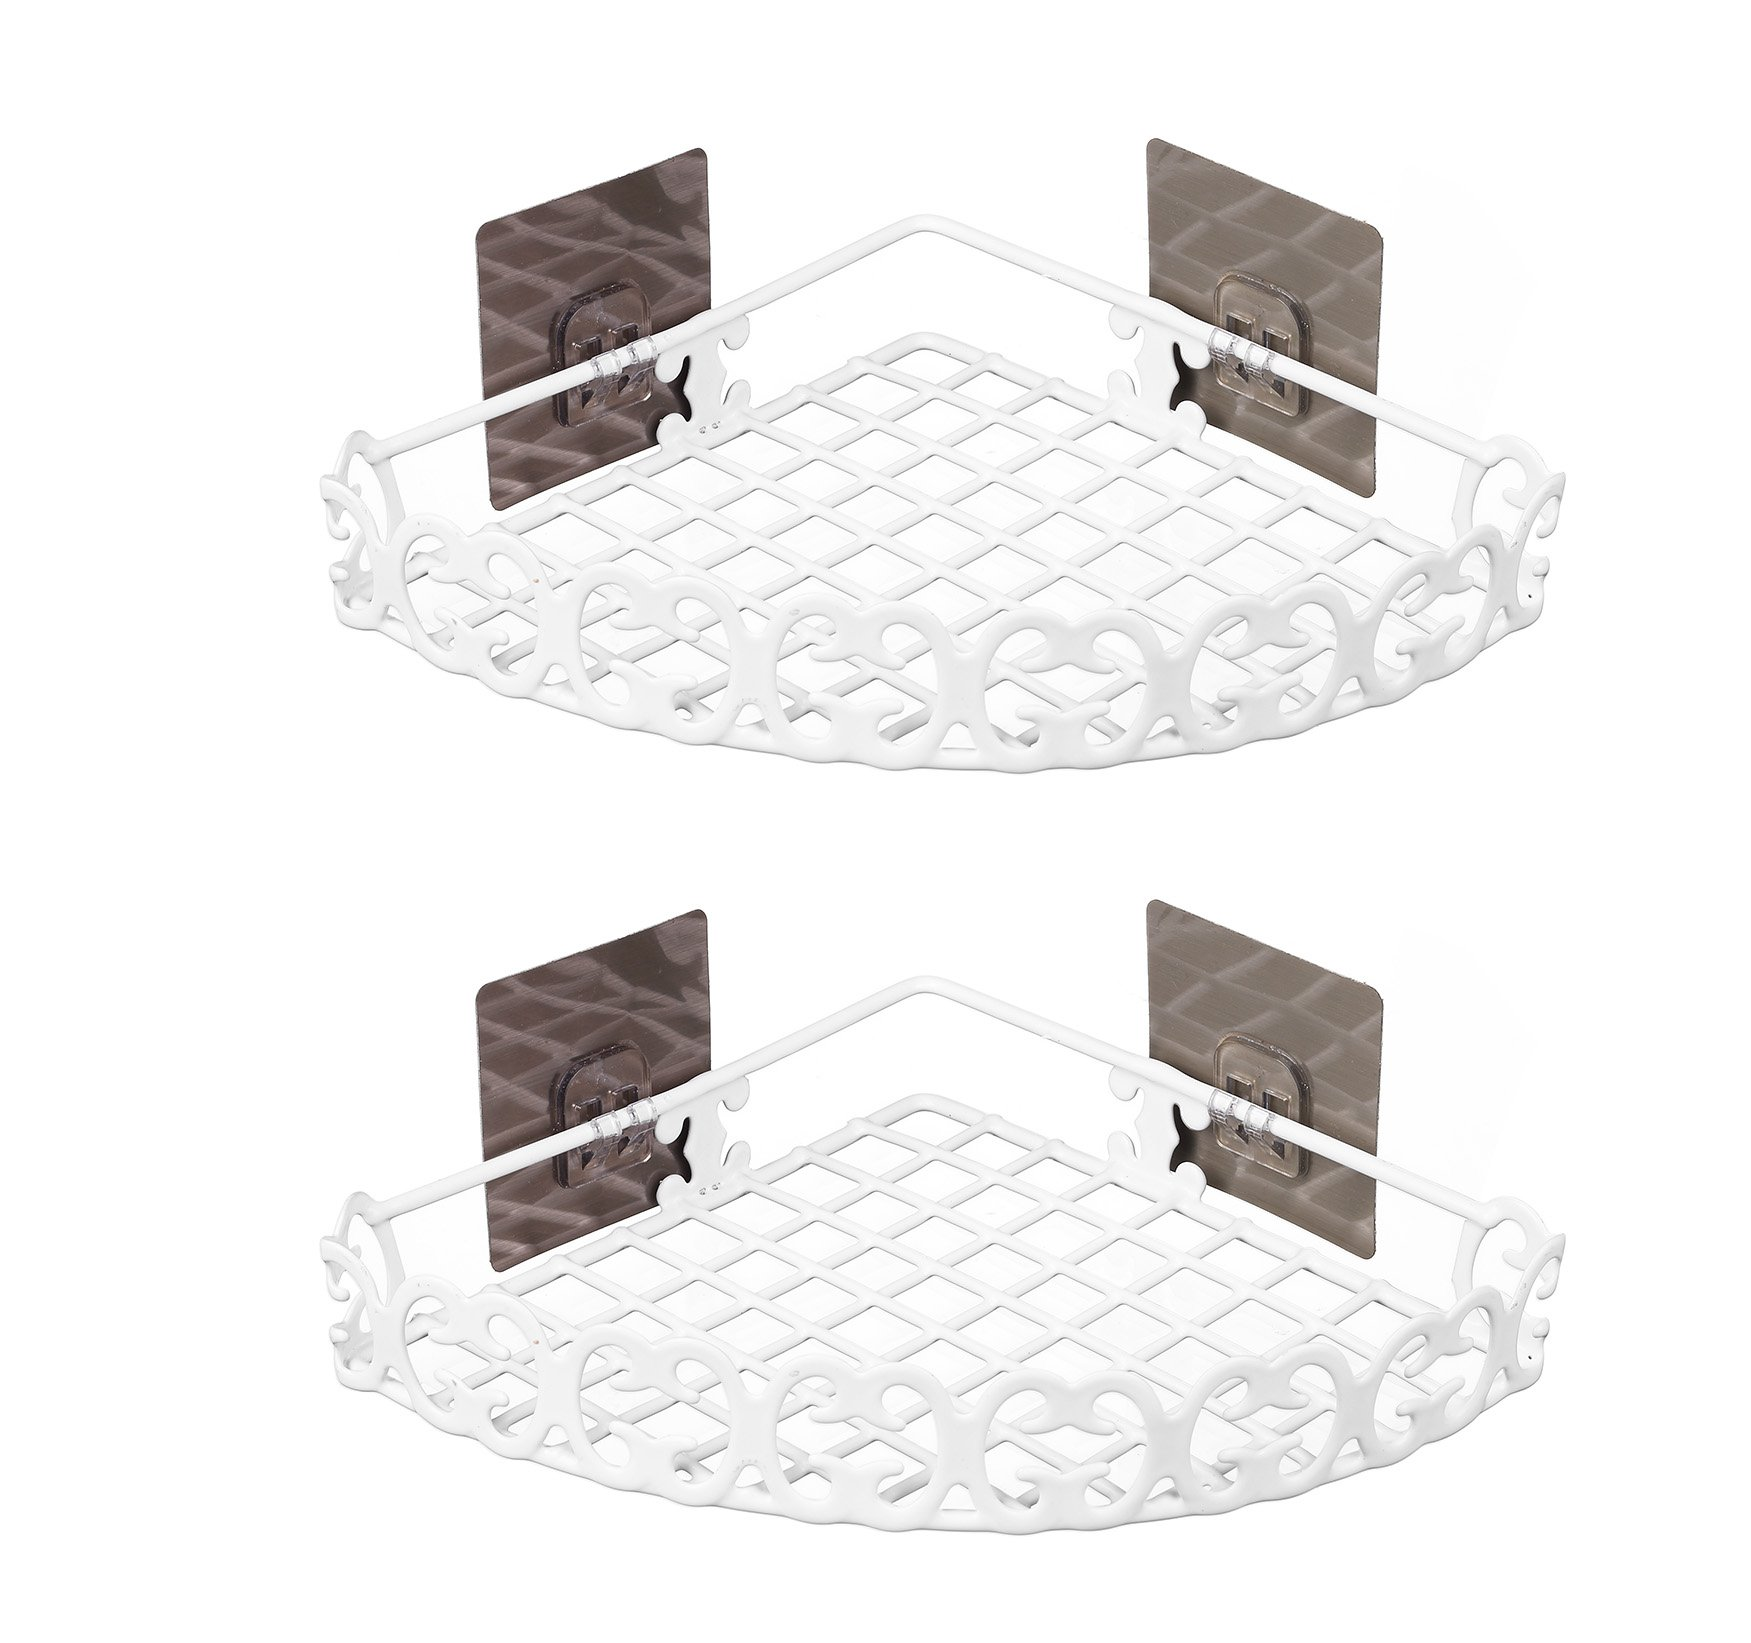 """Chic and Adhesive Wall Mount 2 Tier Shelf Rack for Kitchen Spices or Bathroom Product Holder in Semidiameter 7.5"""" - Pack 2 (White) - Quick Installation: Just peel off the cover and install. No drilling and tool needed, and no damage to your wall Removable Powerful Adhesive: Traceless adhesive, ensuring strong bearing and adhesion PVC surface treatment, more durable and waterproof - shelves-cabinets, bathroom-fixtures-hardware, bathroom - 71pEDF0qp3L -"""